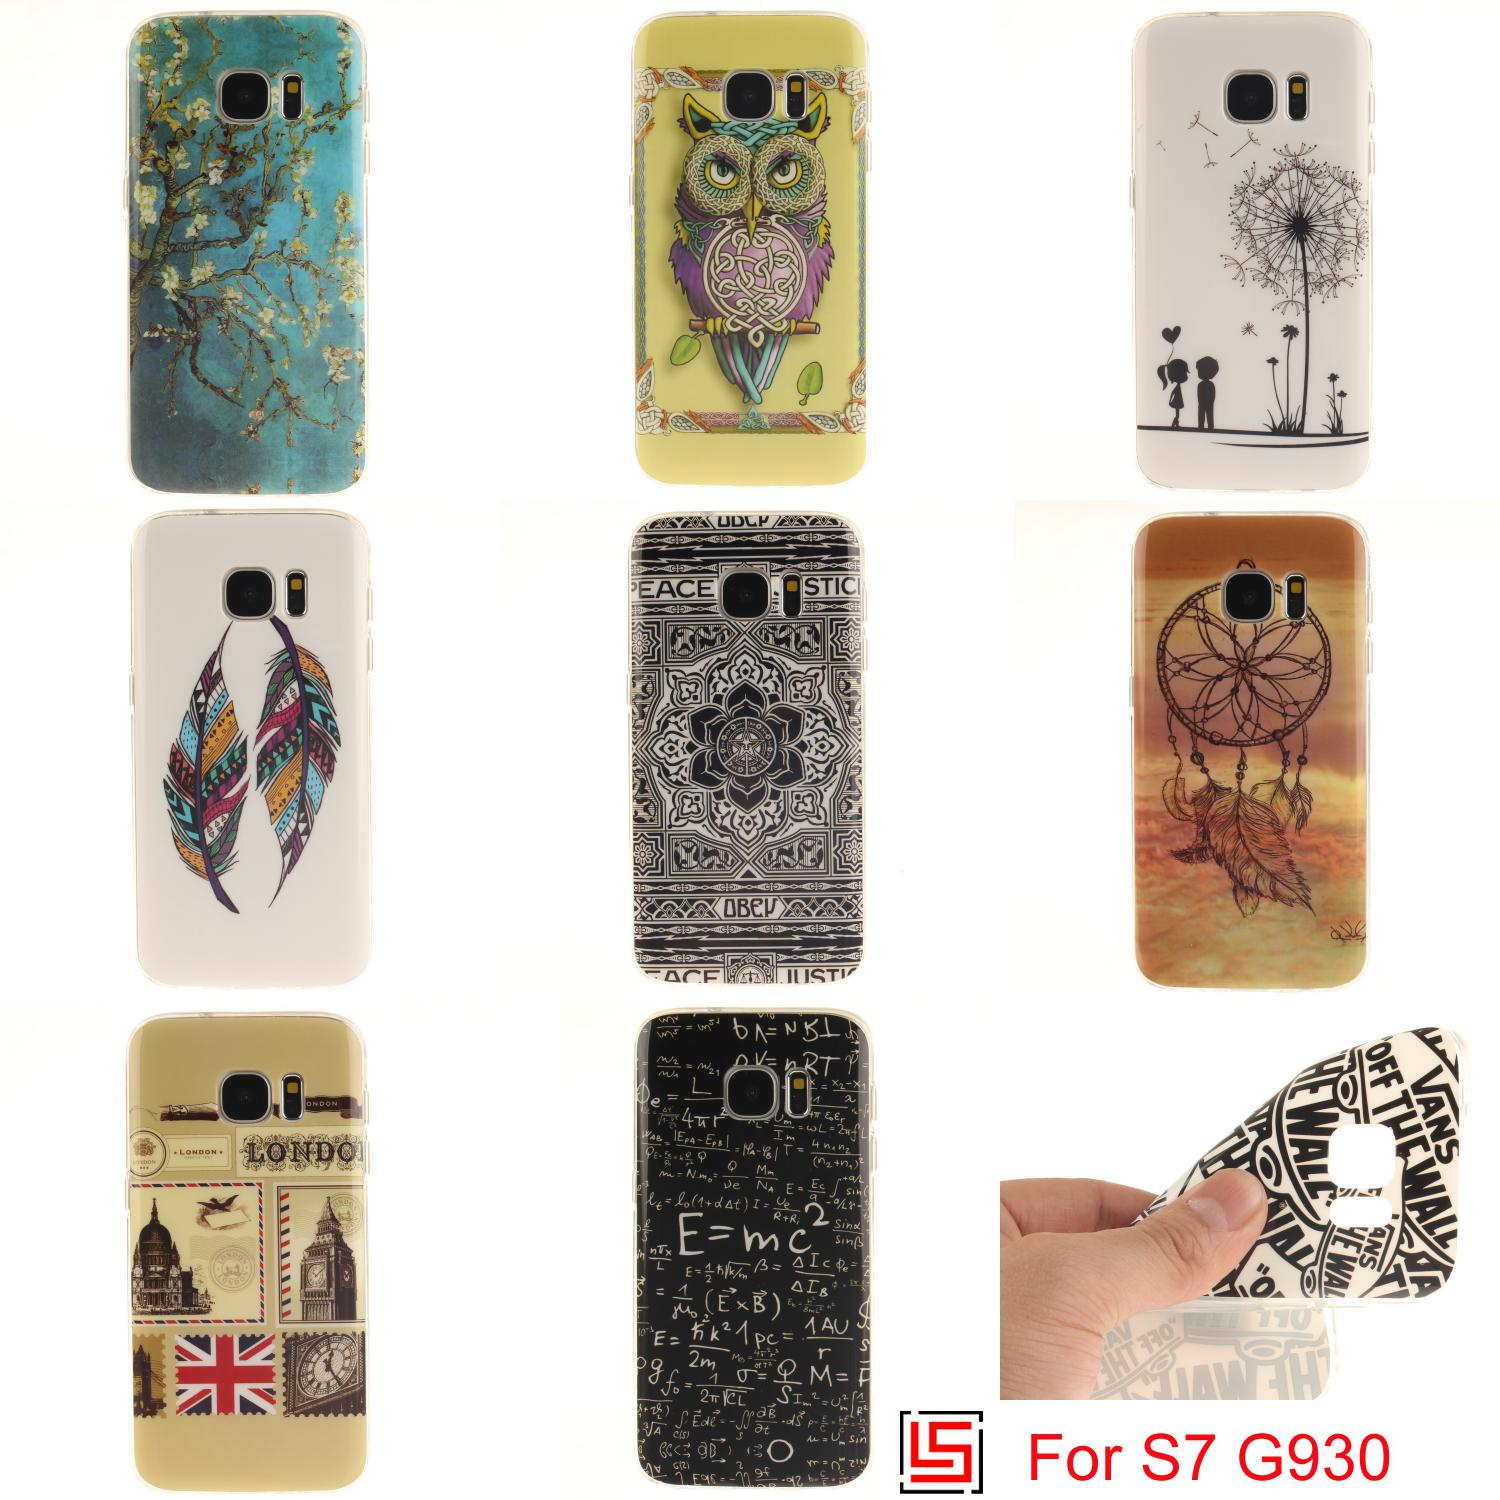 Ultra Thin TPU Silicone Soft Phone Case Cover For Samsung Samsuns Samsu Sansung Galaxy S7 Sex Girl Dreamcatcher Dandelion